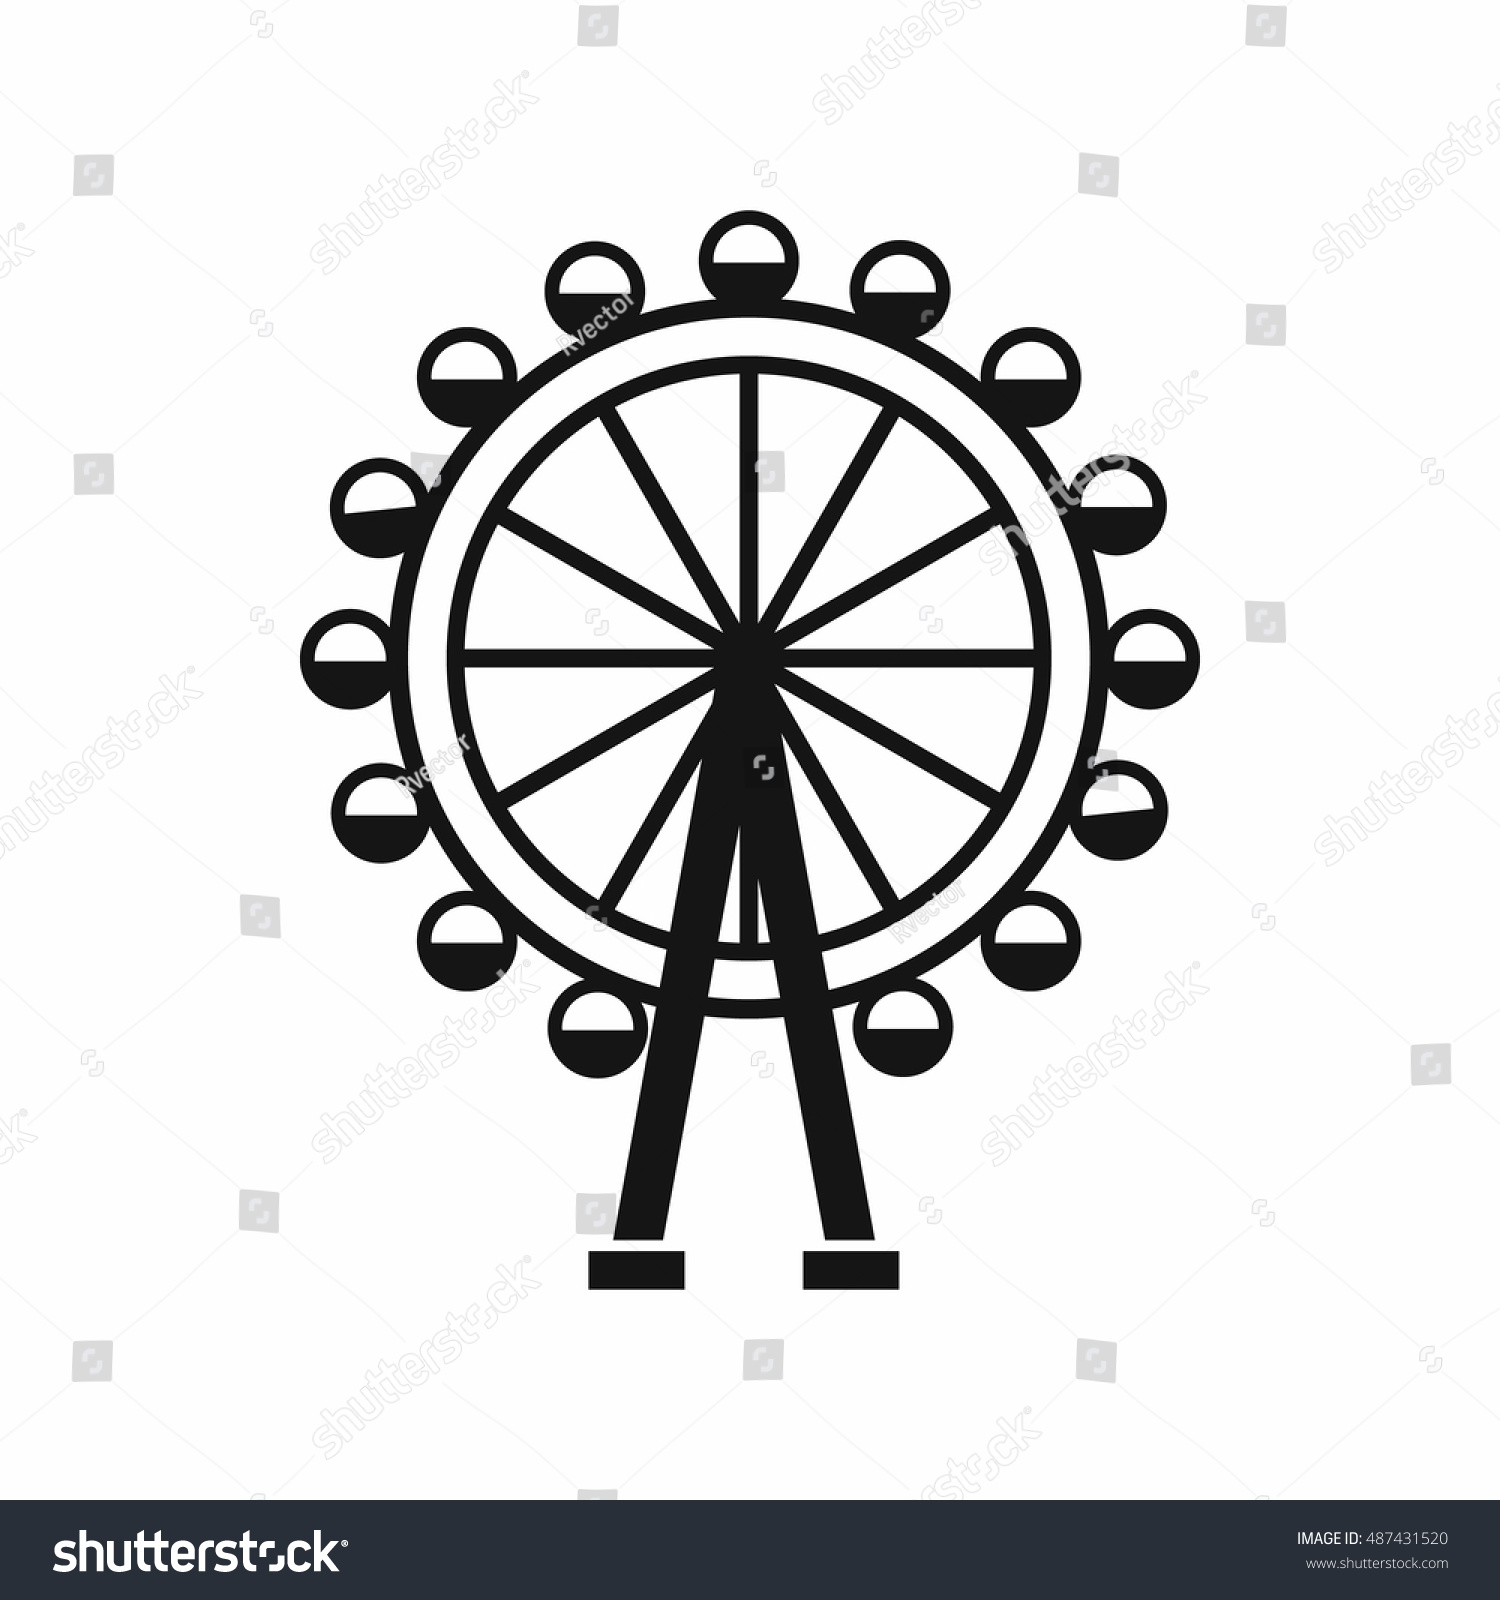 Ferris wheel icon simple style isolated stock illustration ferris wheel icon in simple style isolated on white background entertainment symbol biocorpaavc